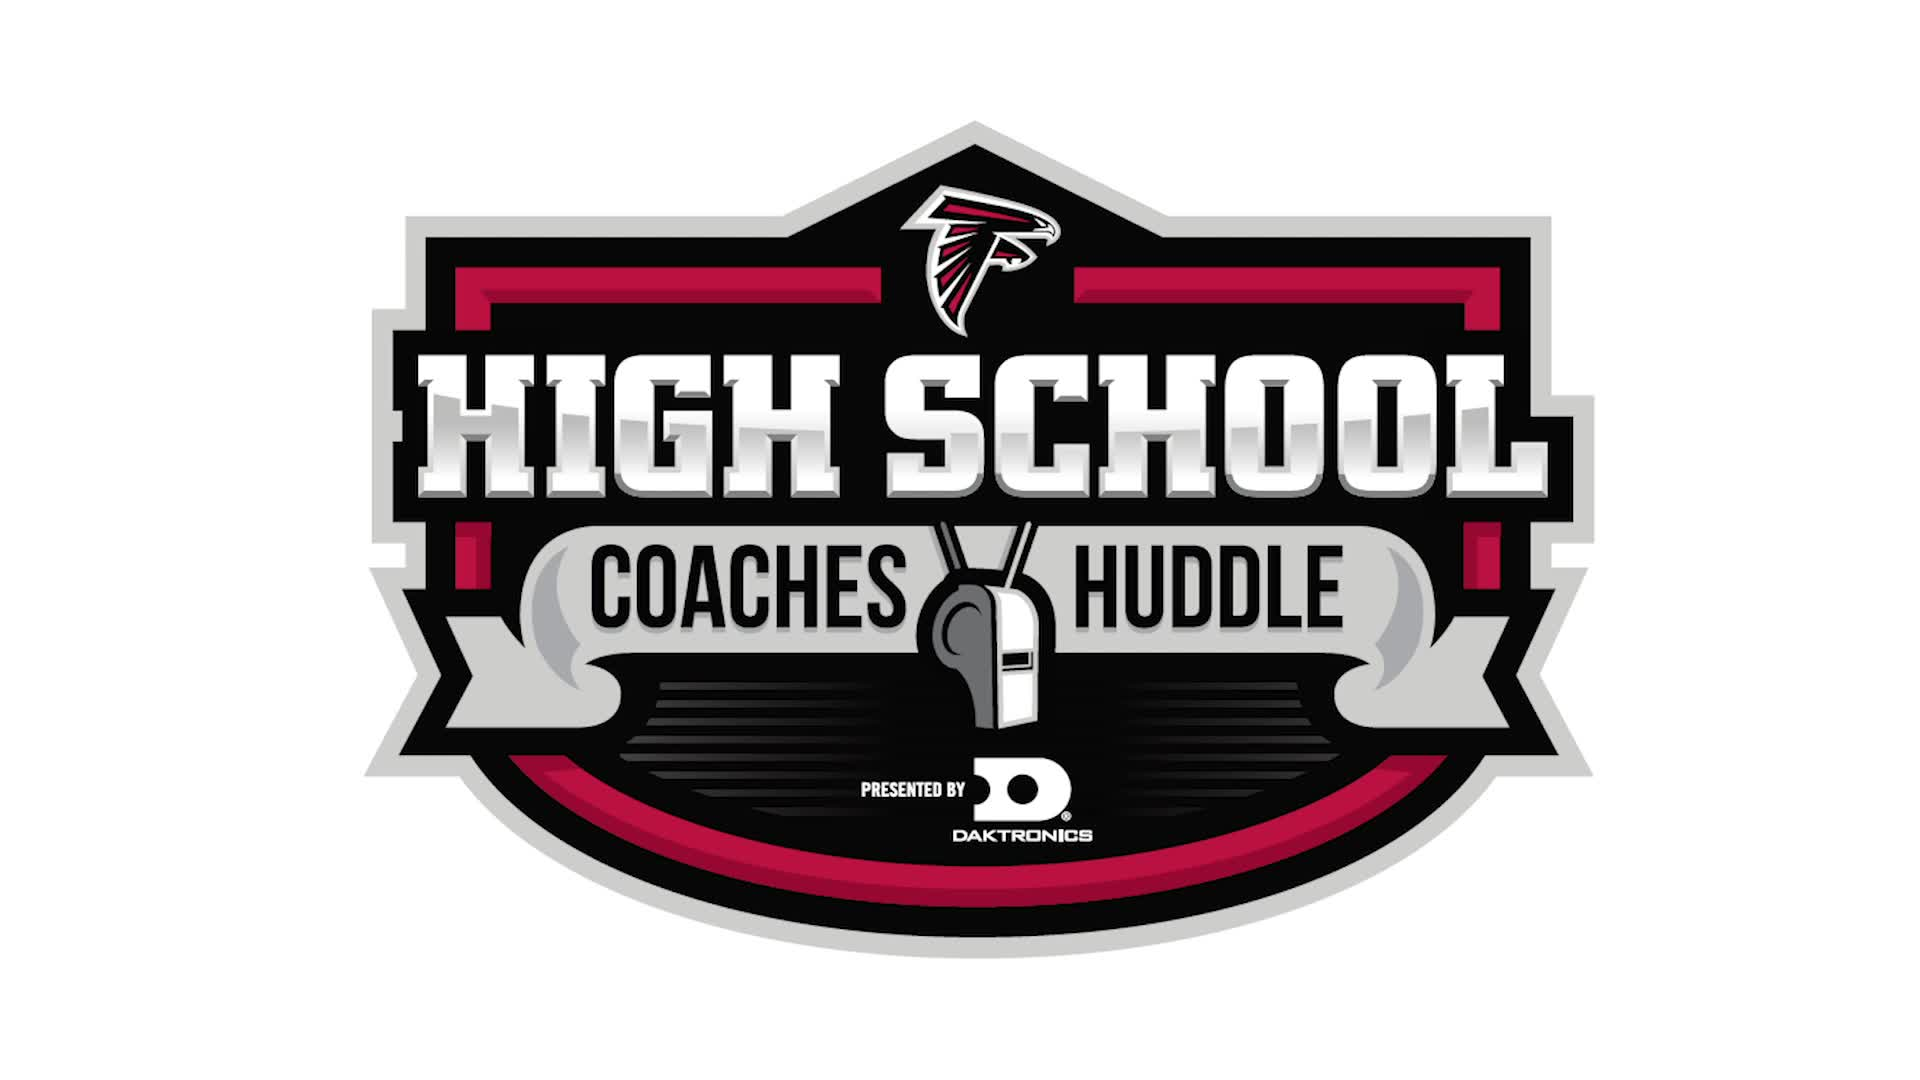 High School Coaches Huddle presented by Daktronics